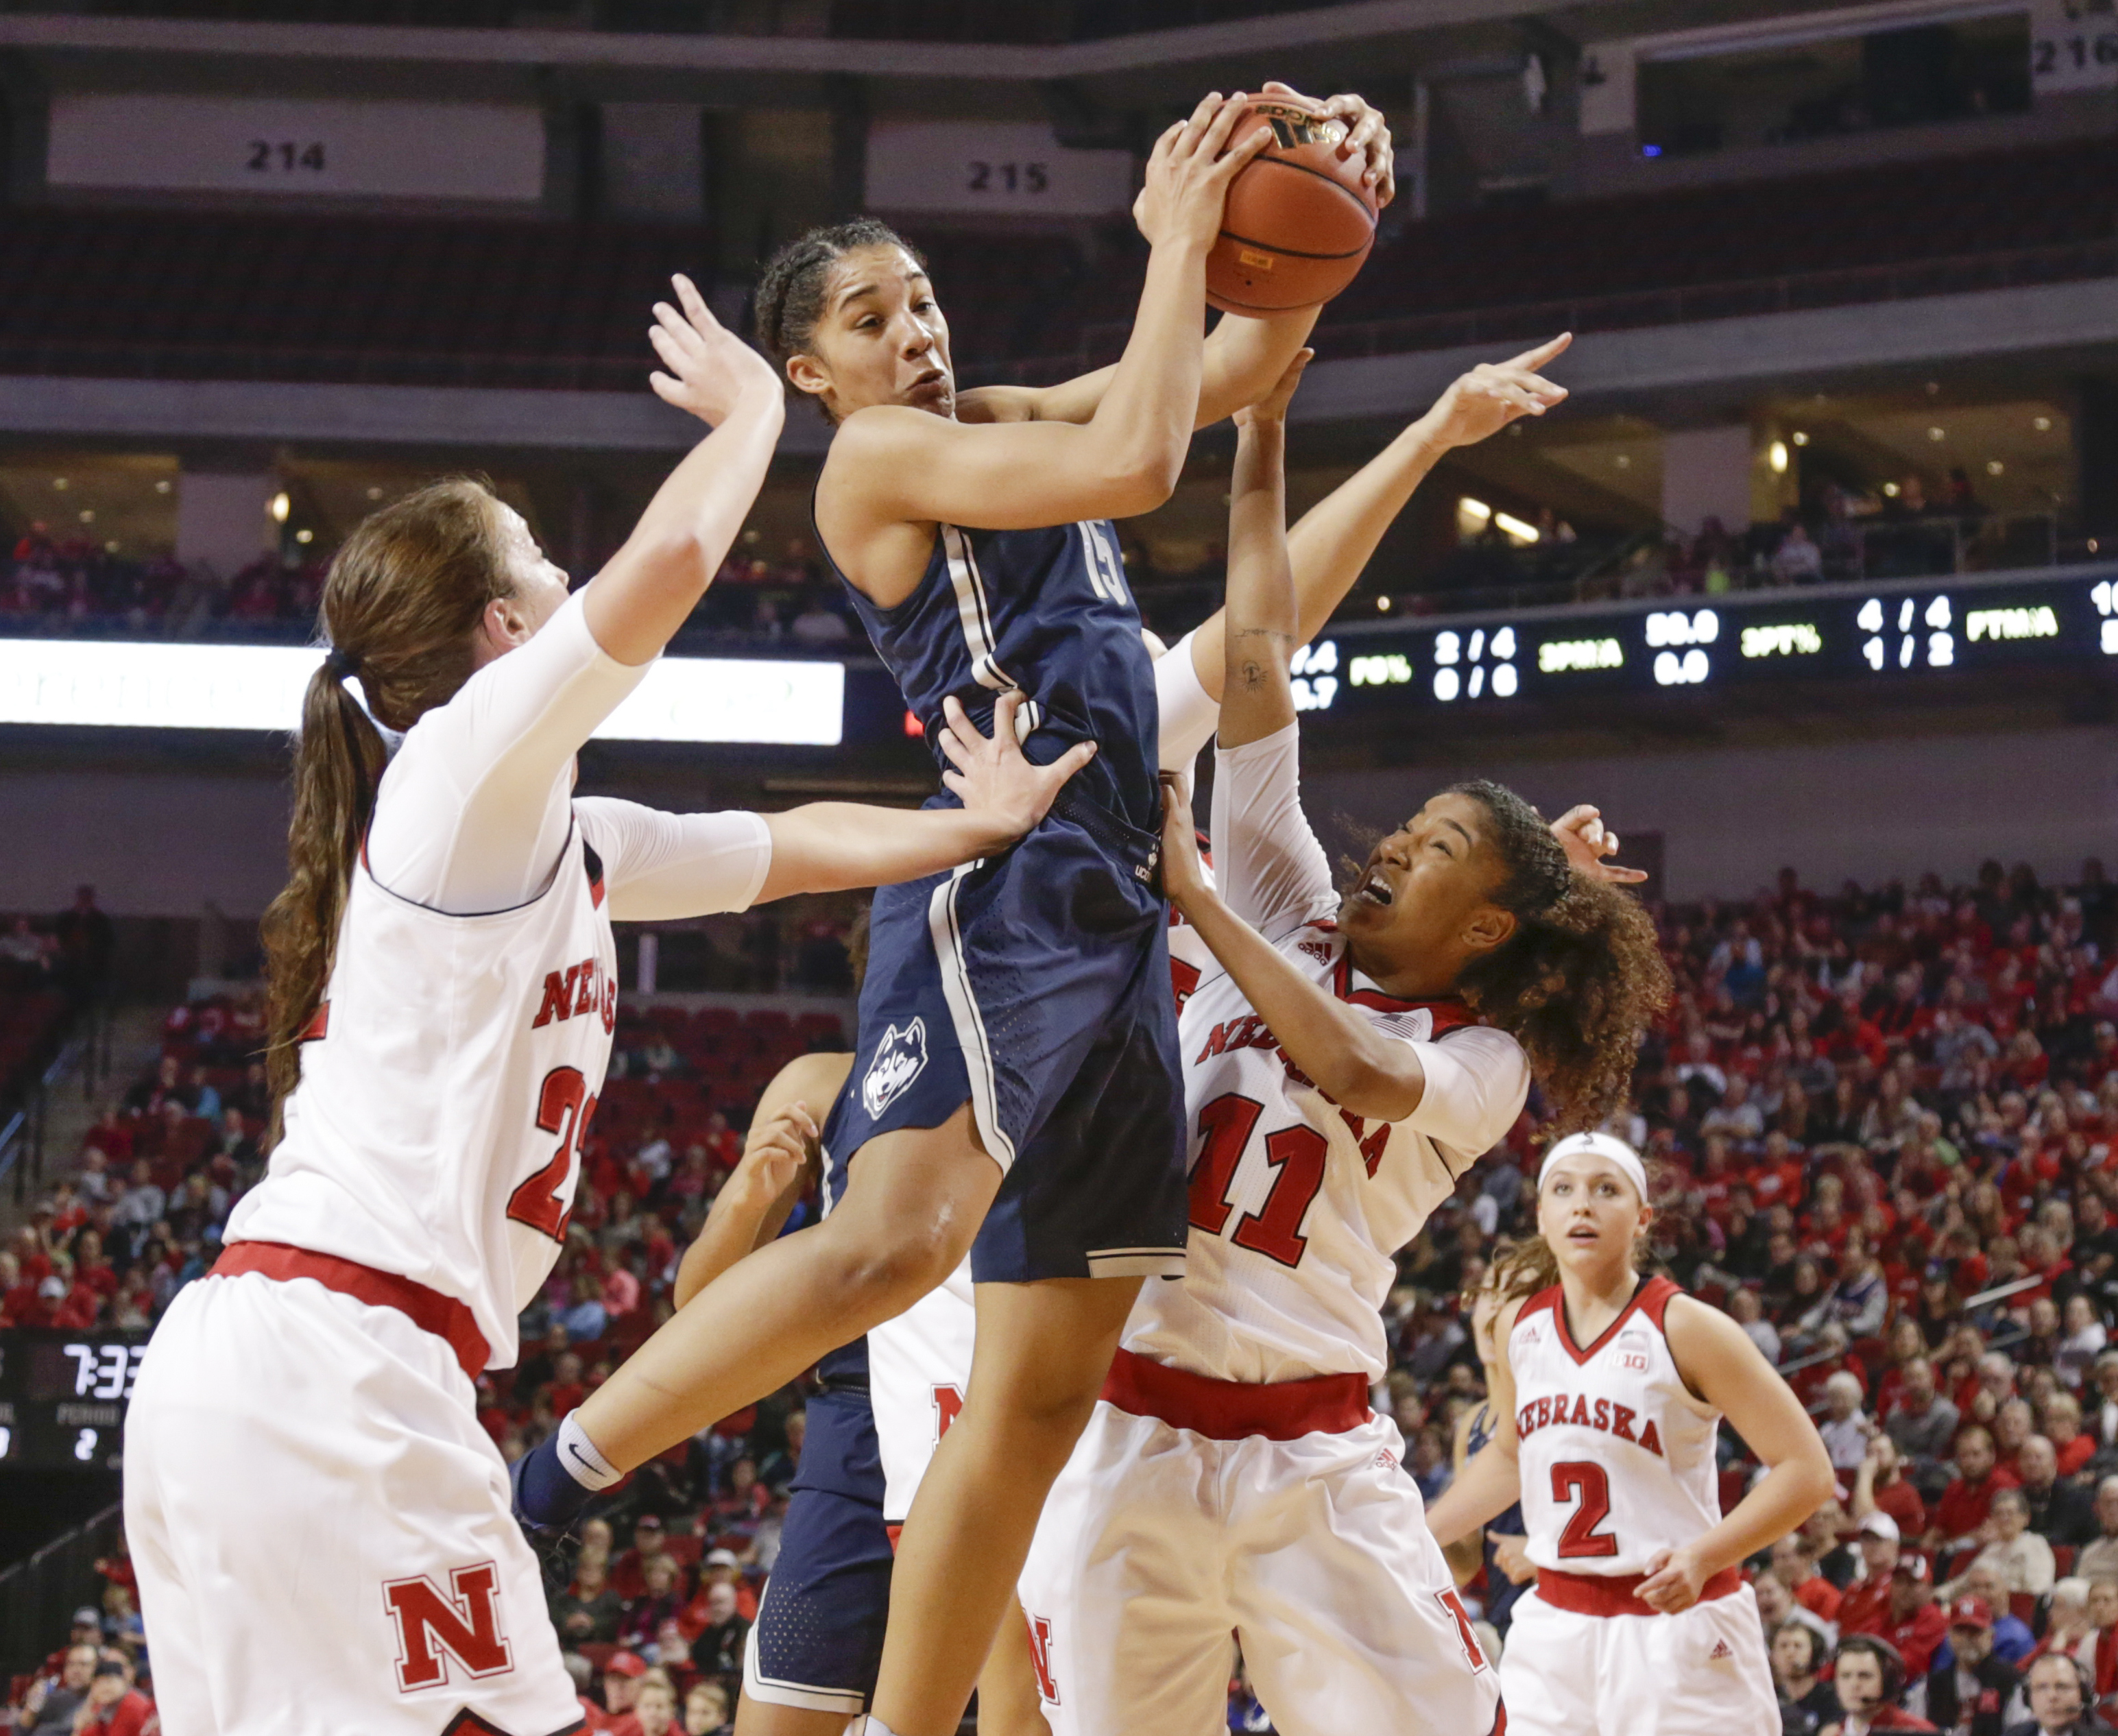 Connecticut's Gabby Williams (15) grabs a rebound between Nebraska's Allie Havers (22) and Esther Ramacieri (11) , with Rylie Cascio Jensen (2) watching, during the first half of an NCAA college basketball game in Lincoln, Neb., Wednesday, Dec. 21, 2016.